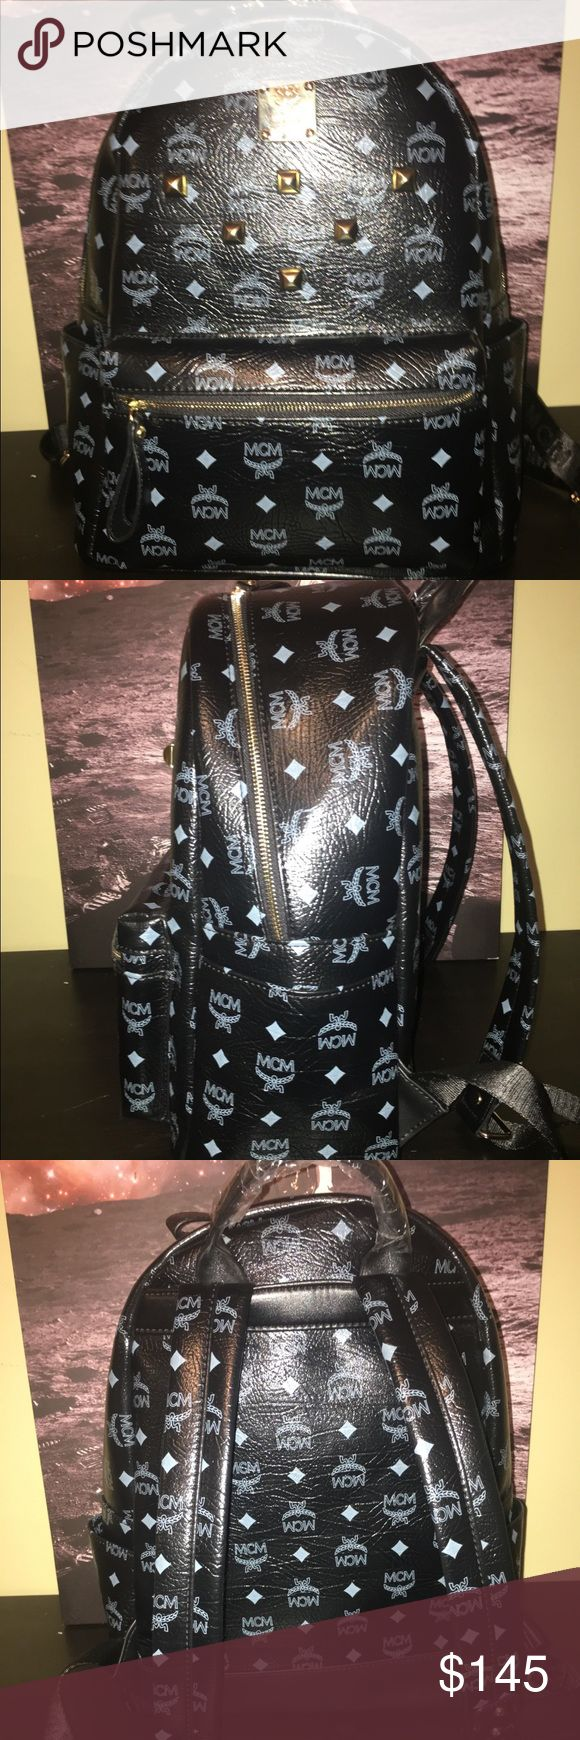 Mcm backpack Brand new Comes with dusbag MCM Bags Backpacks